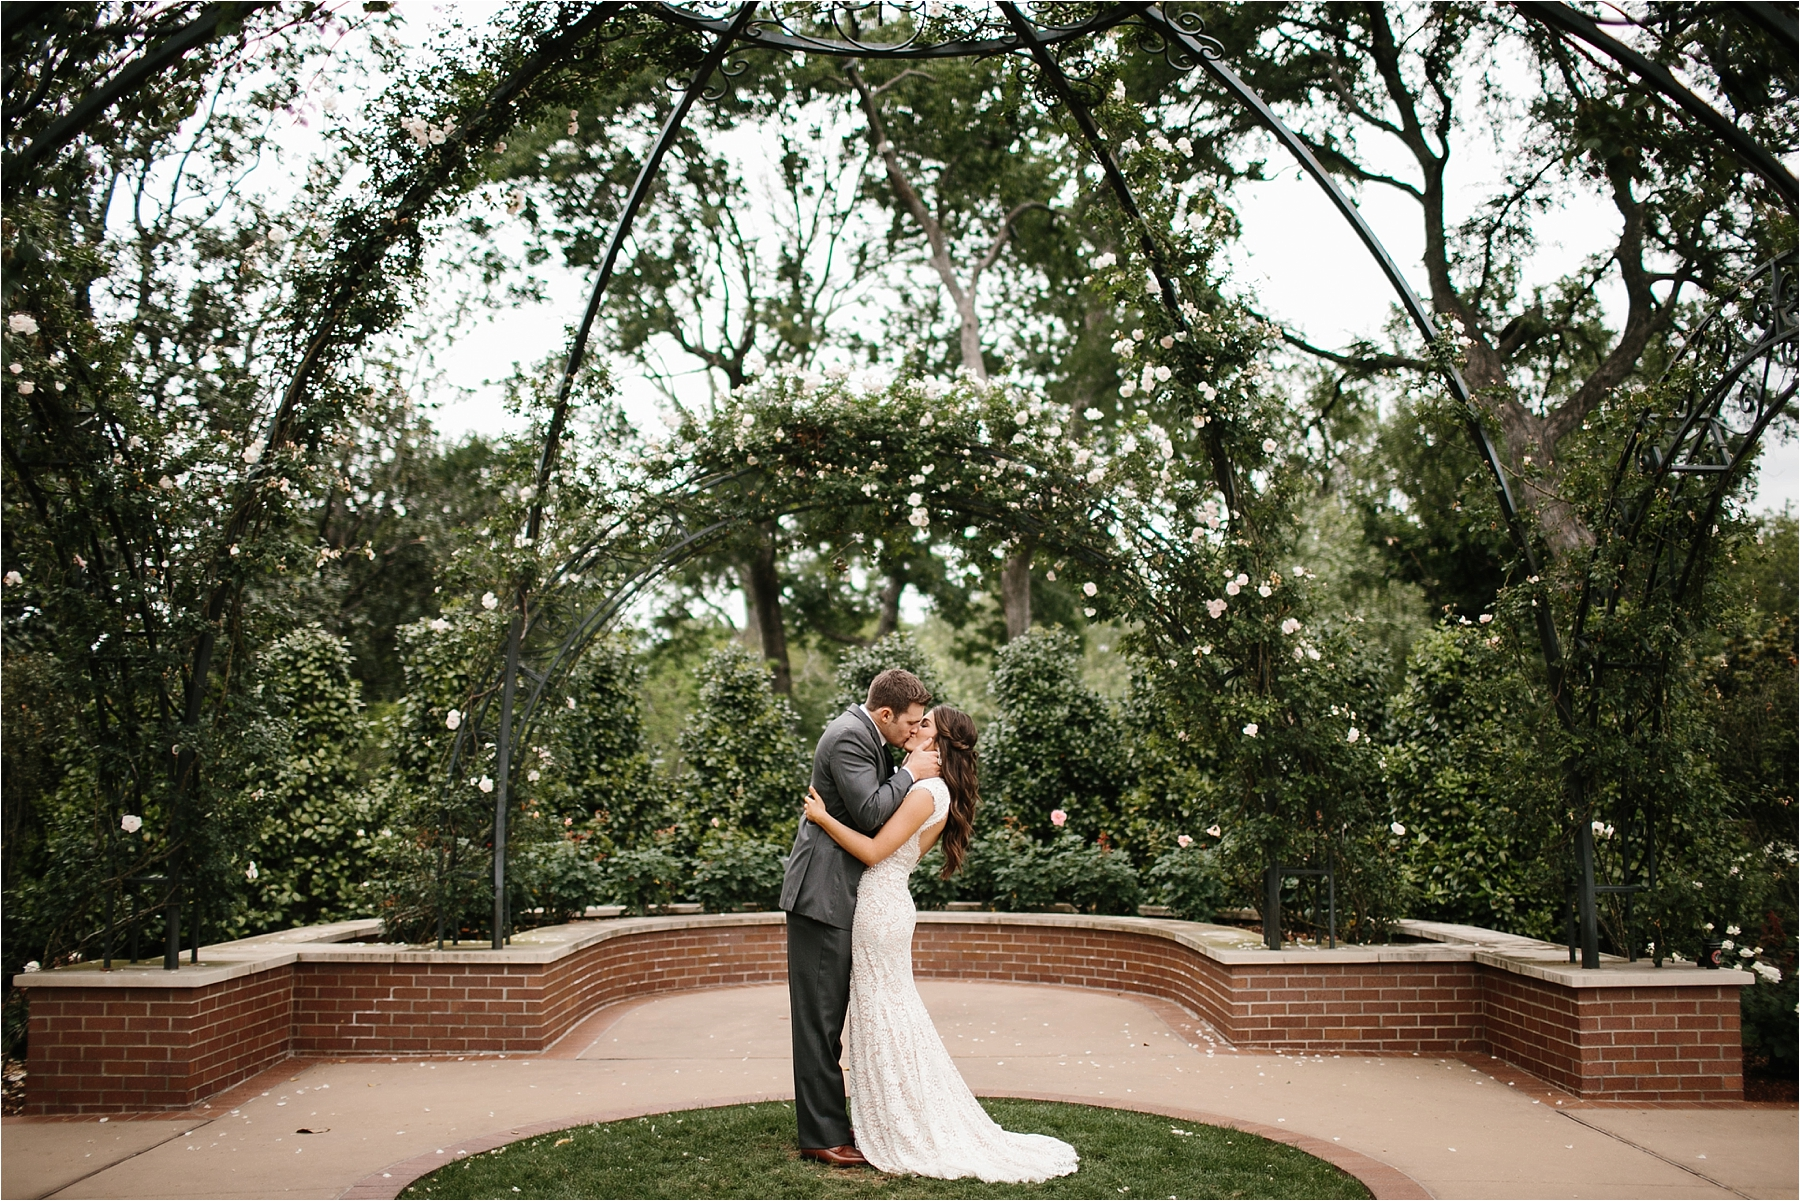 Devyn + Caden __ a Dallas Arboretum Garden Style Wedding by North Texas Wedding Photographer Rachel Meagan Photography __ 053